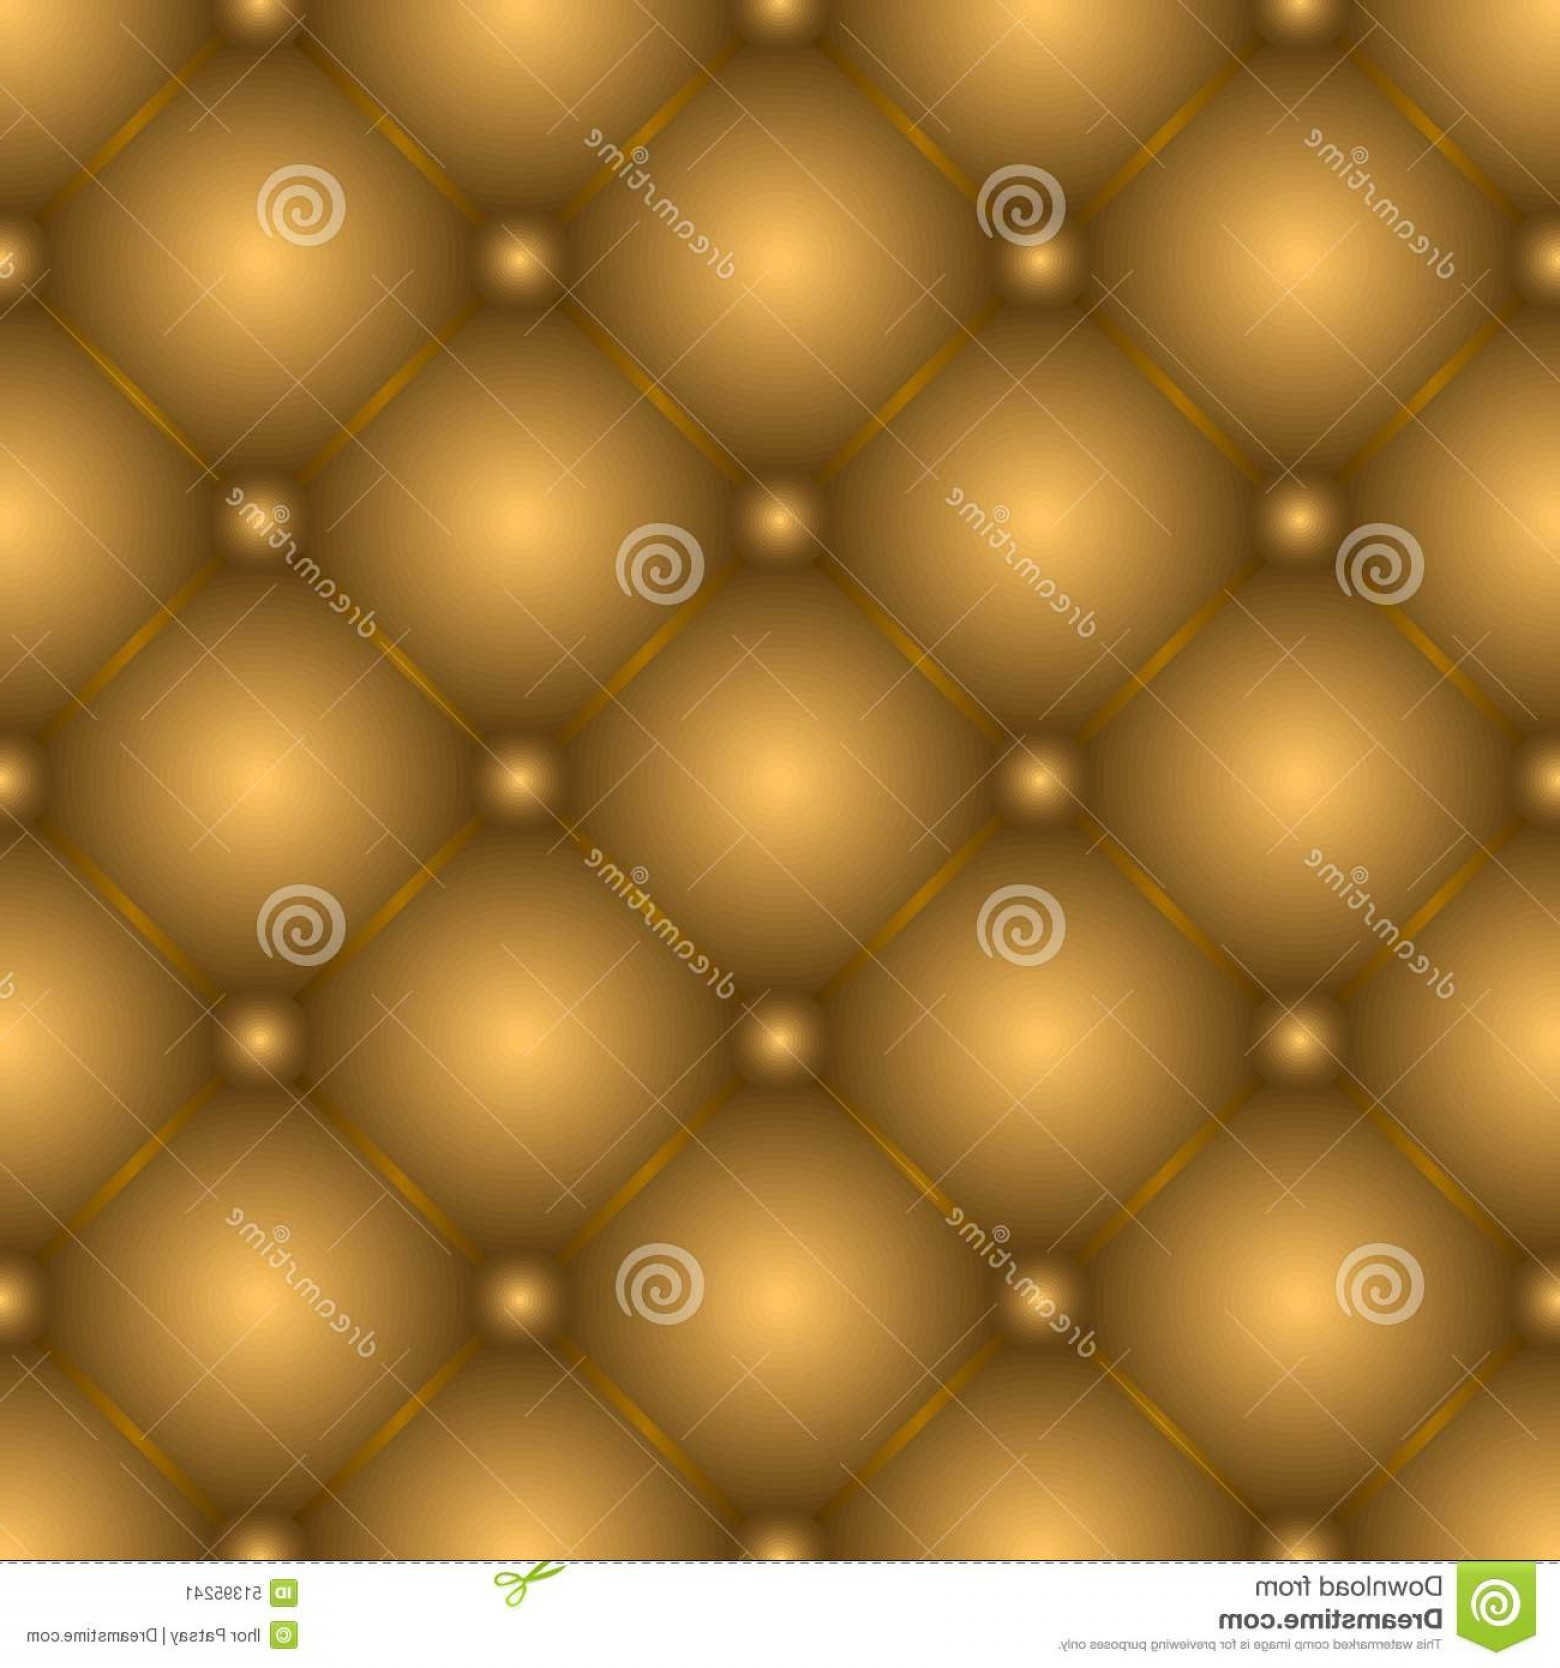 Vector Seamless Leather Pattern: Stock Illustration Seamless Leather Pattern Golden Brown Tufted Texture Image